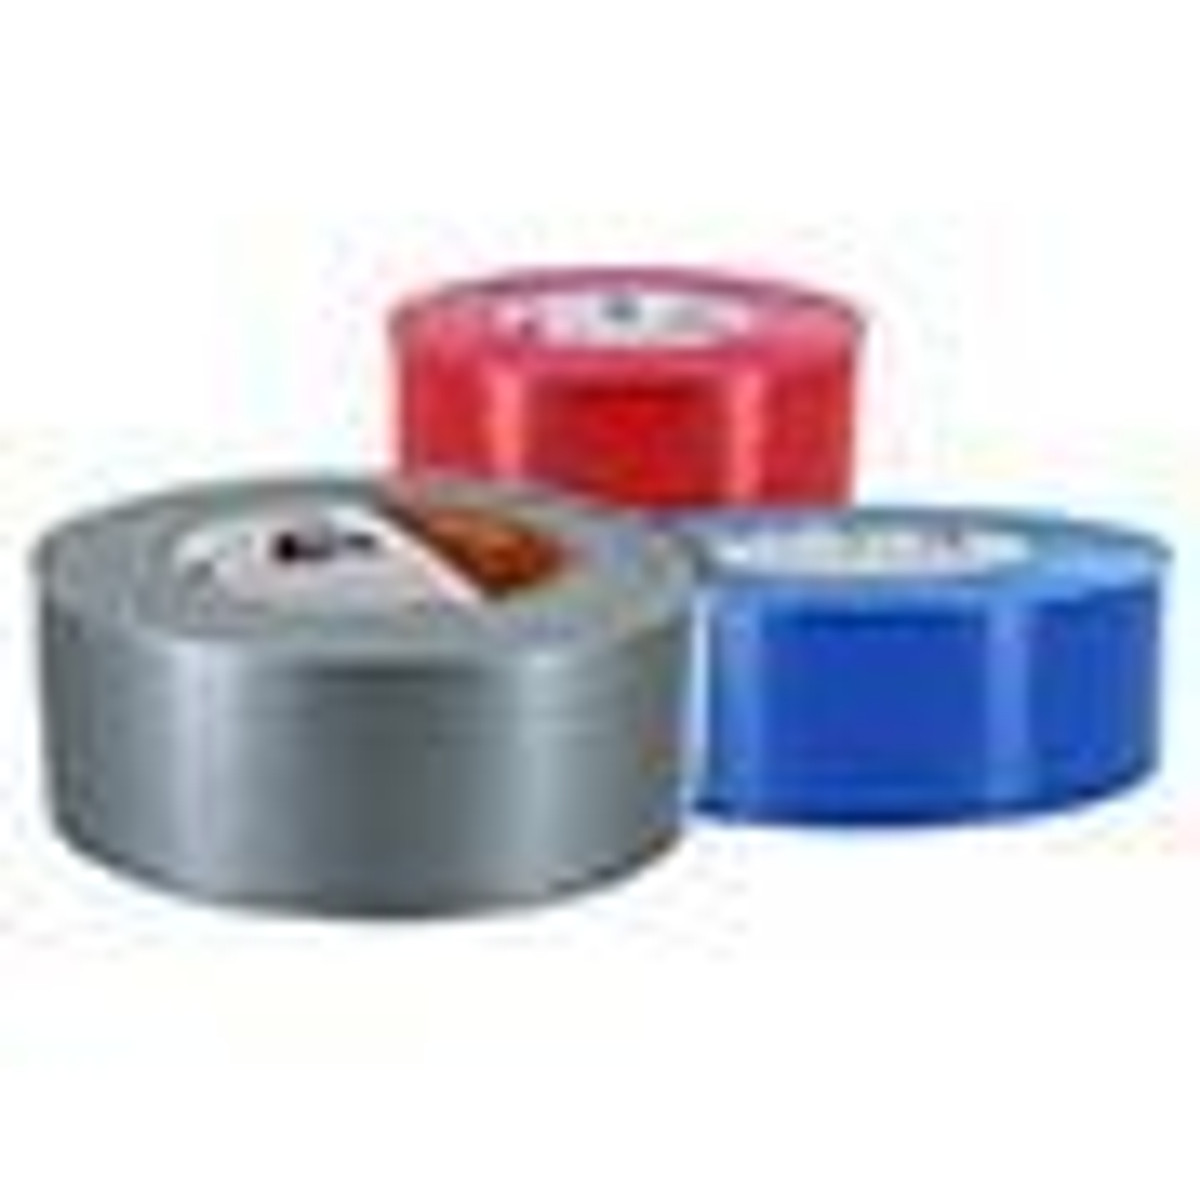 Duct, Cloth & Craft Tape